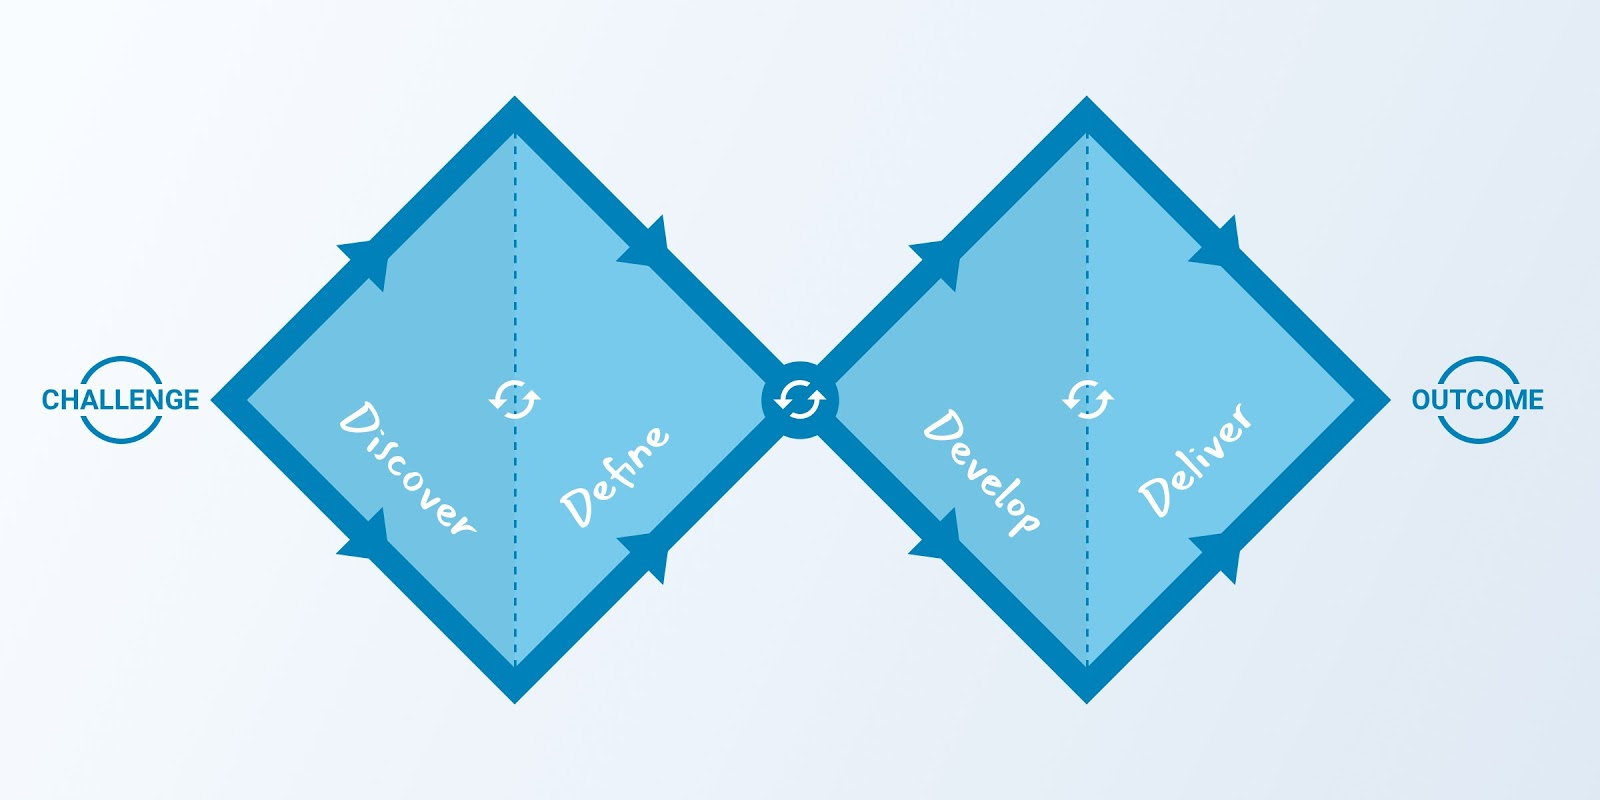 A visual representation of the Double Diamond framework which includes stages in discover, define, develop, and deliver